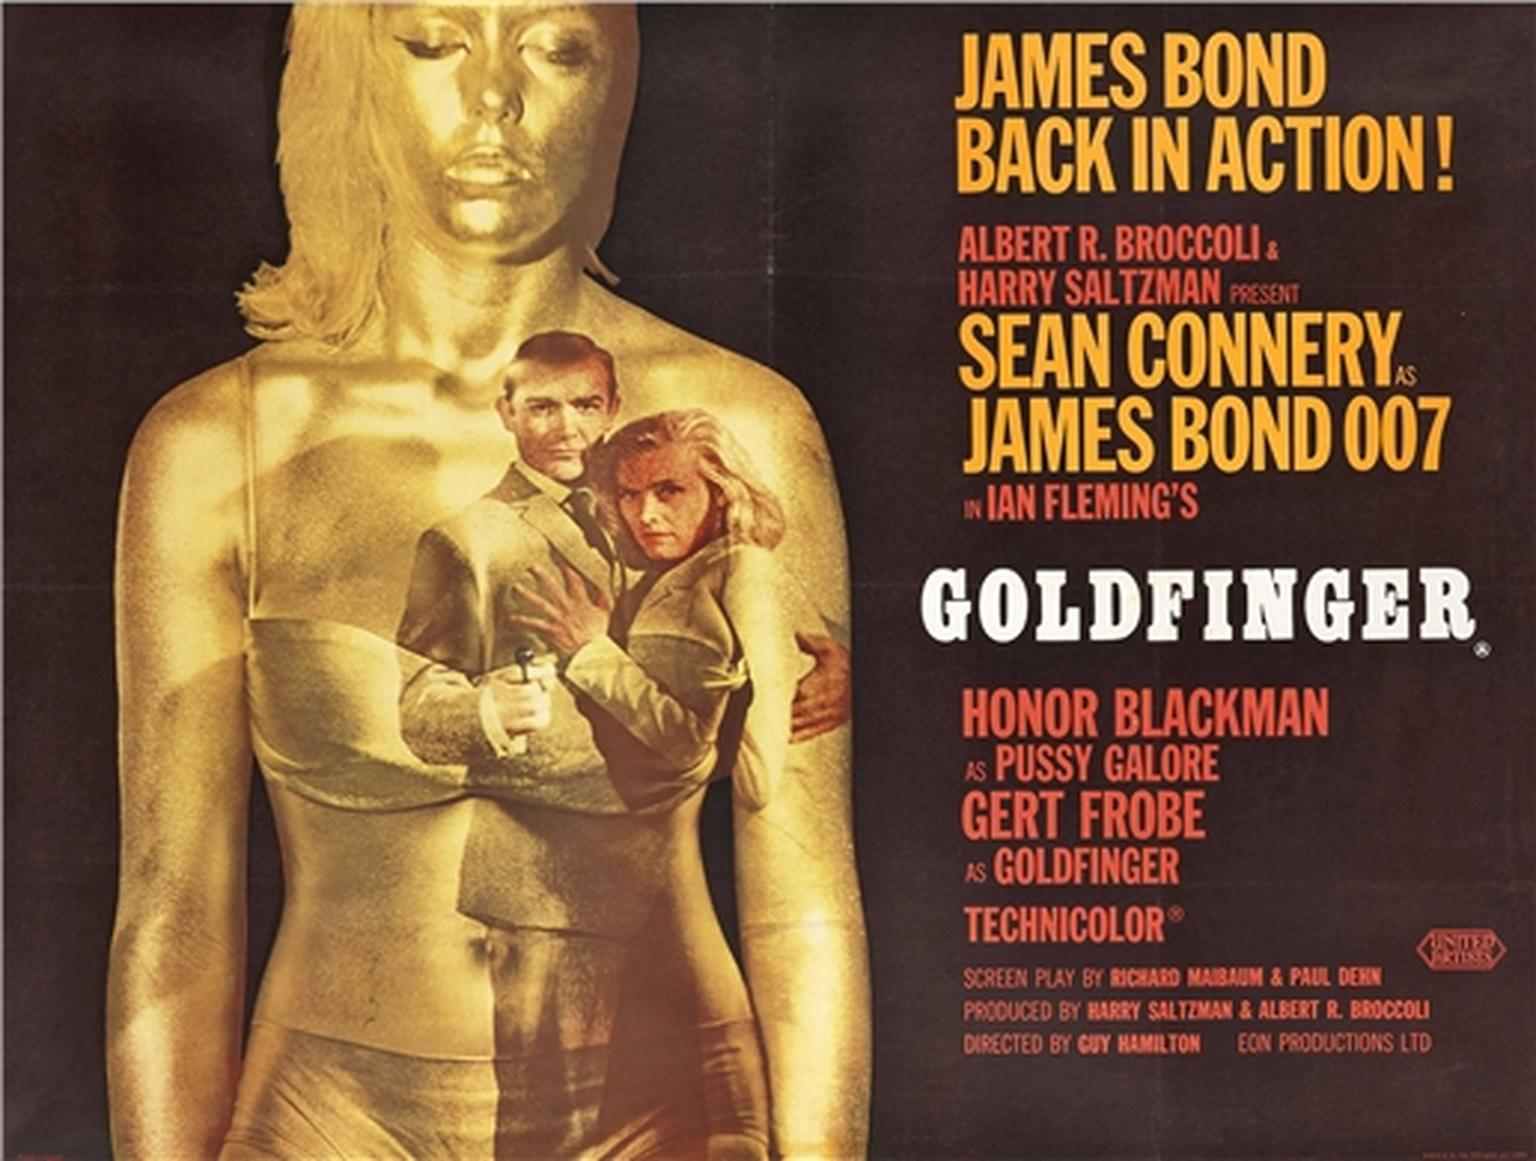 An original ad for Ian Fleming's Goldfinger, starring Sean Connery as James Bond and Honor Blackman as Pussy Galore.